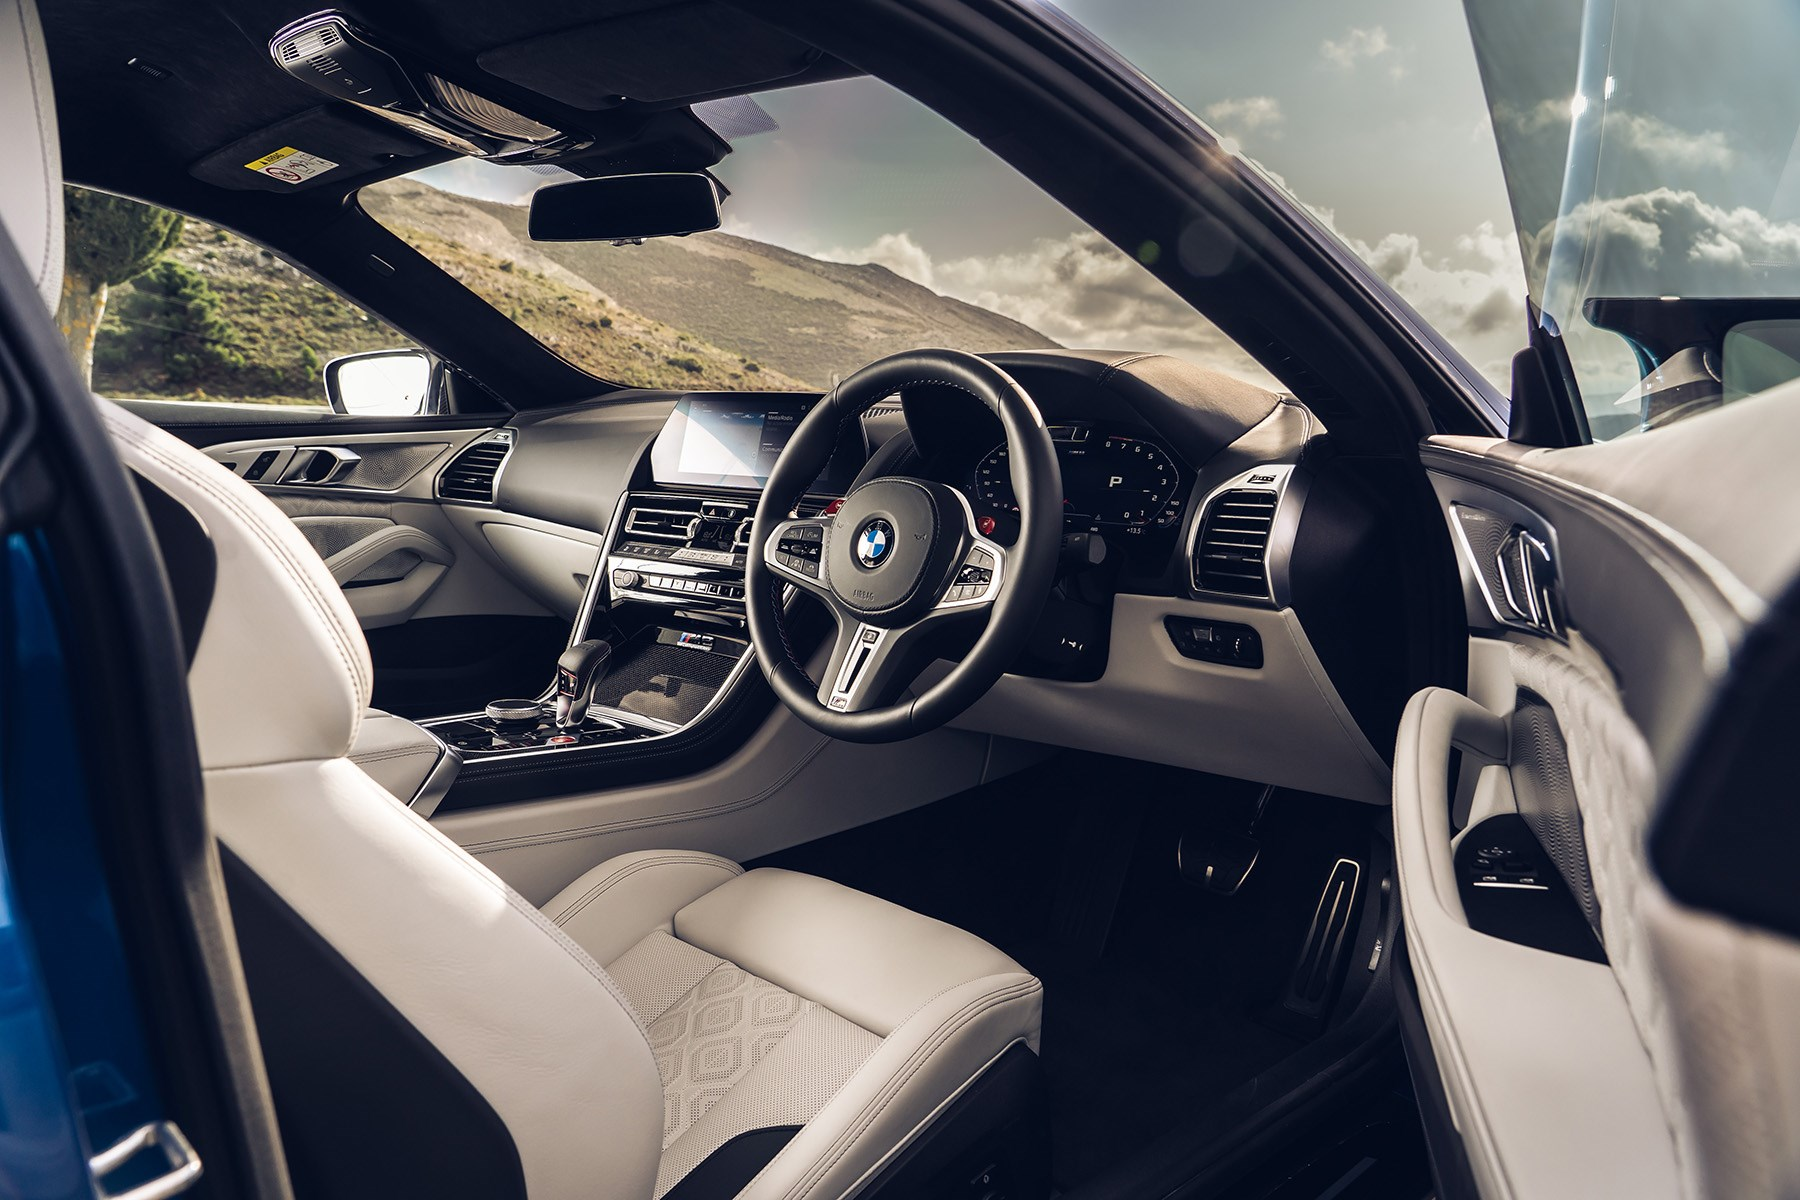 BMW M8 UK interior